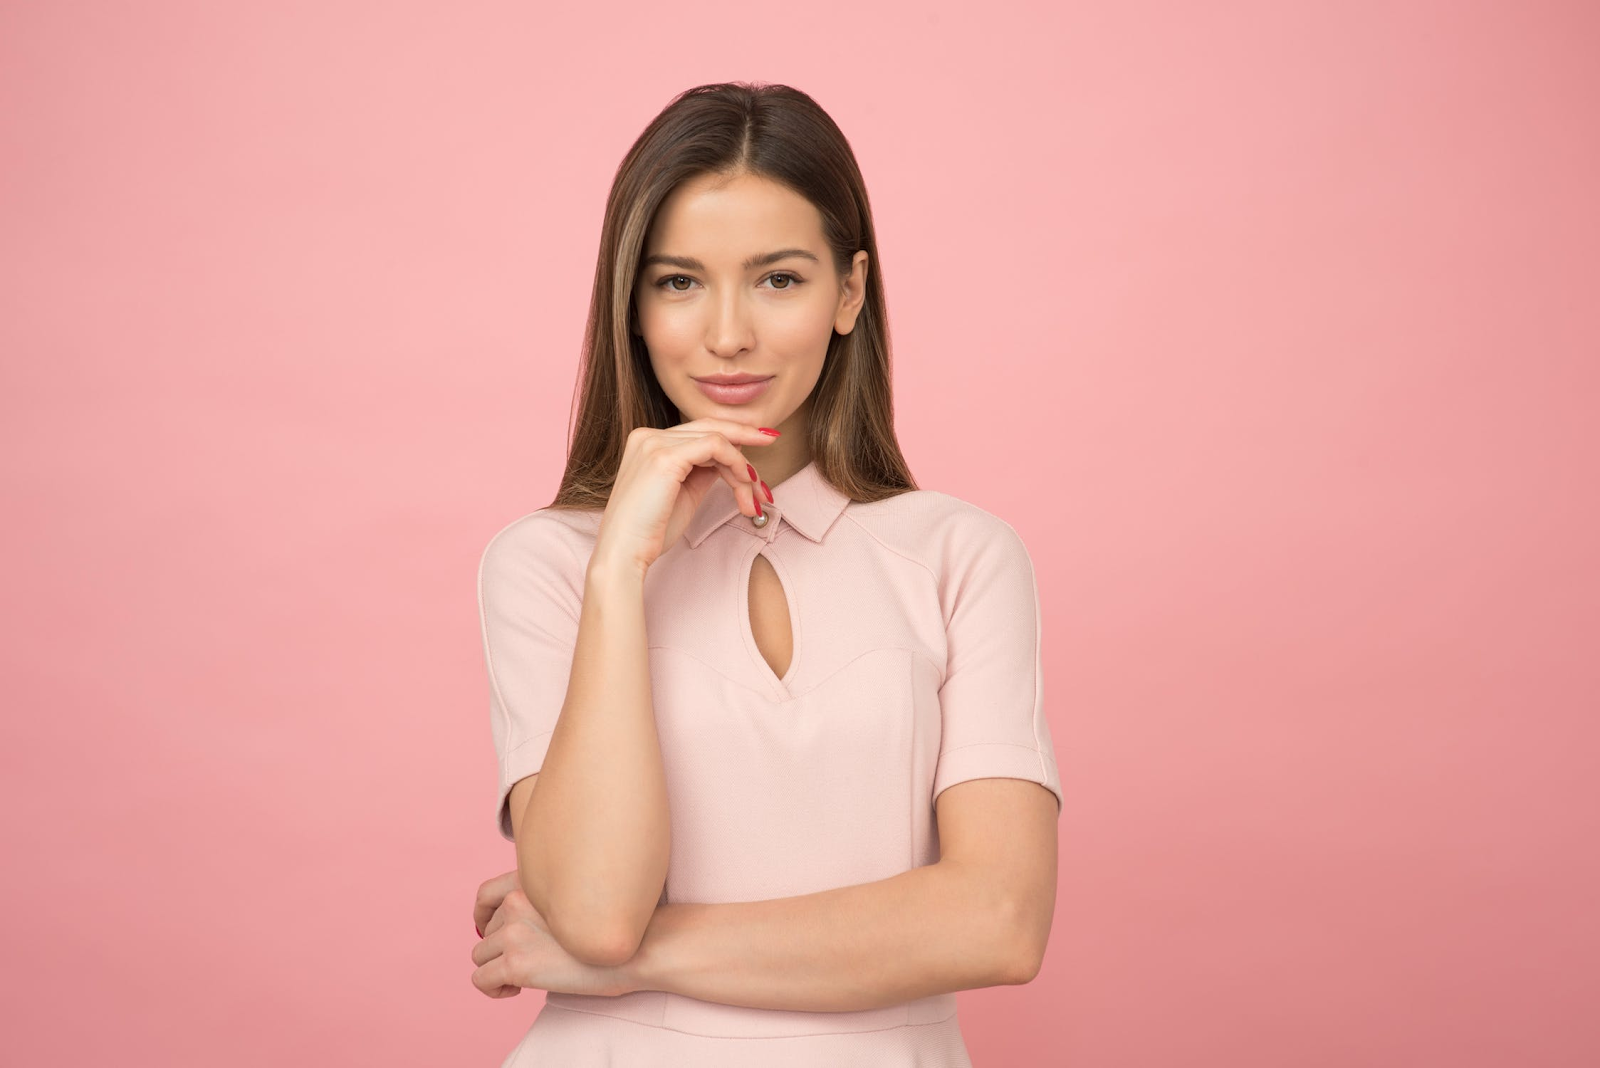 smiling woman pink background